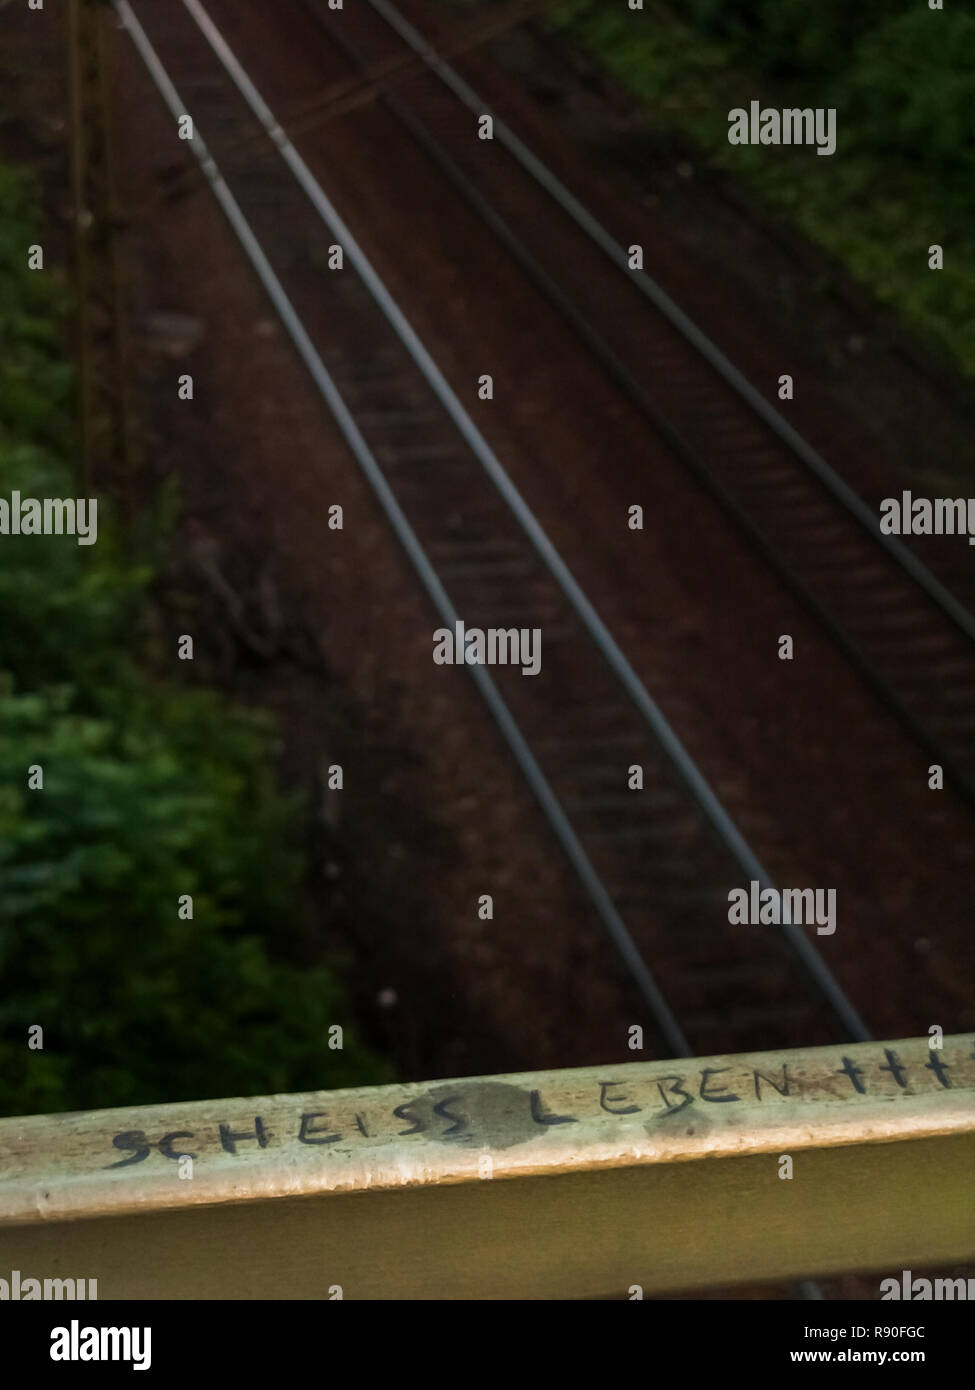 graffito on the parapet above a railway line, text: _ s..t life_, - Stock Image